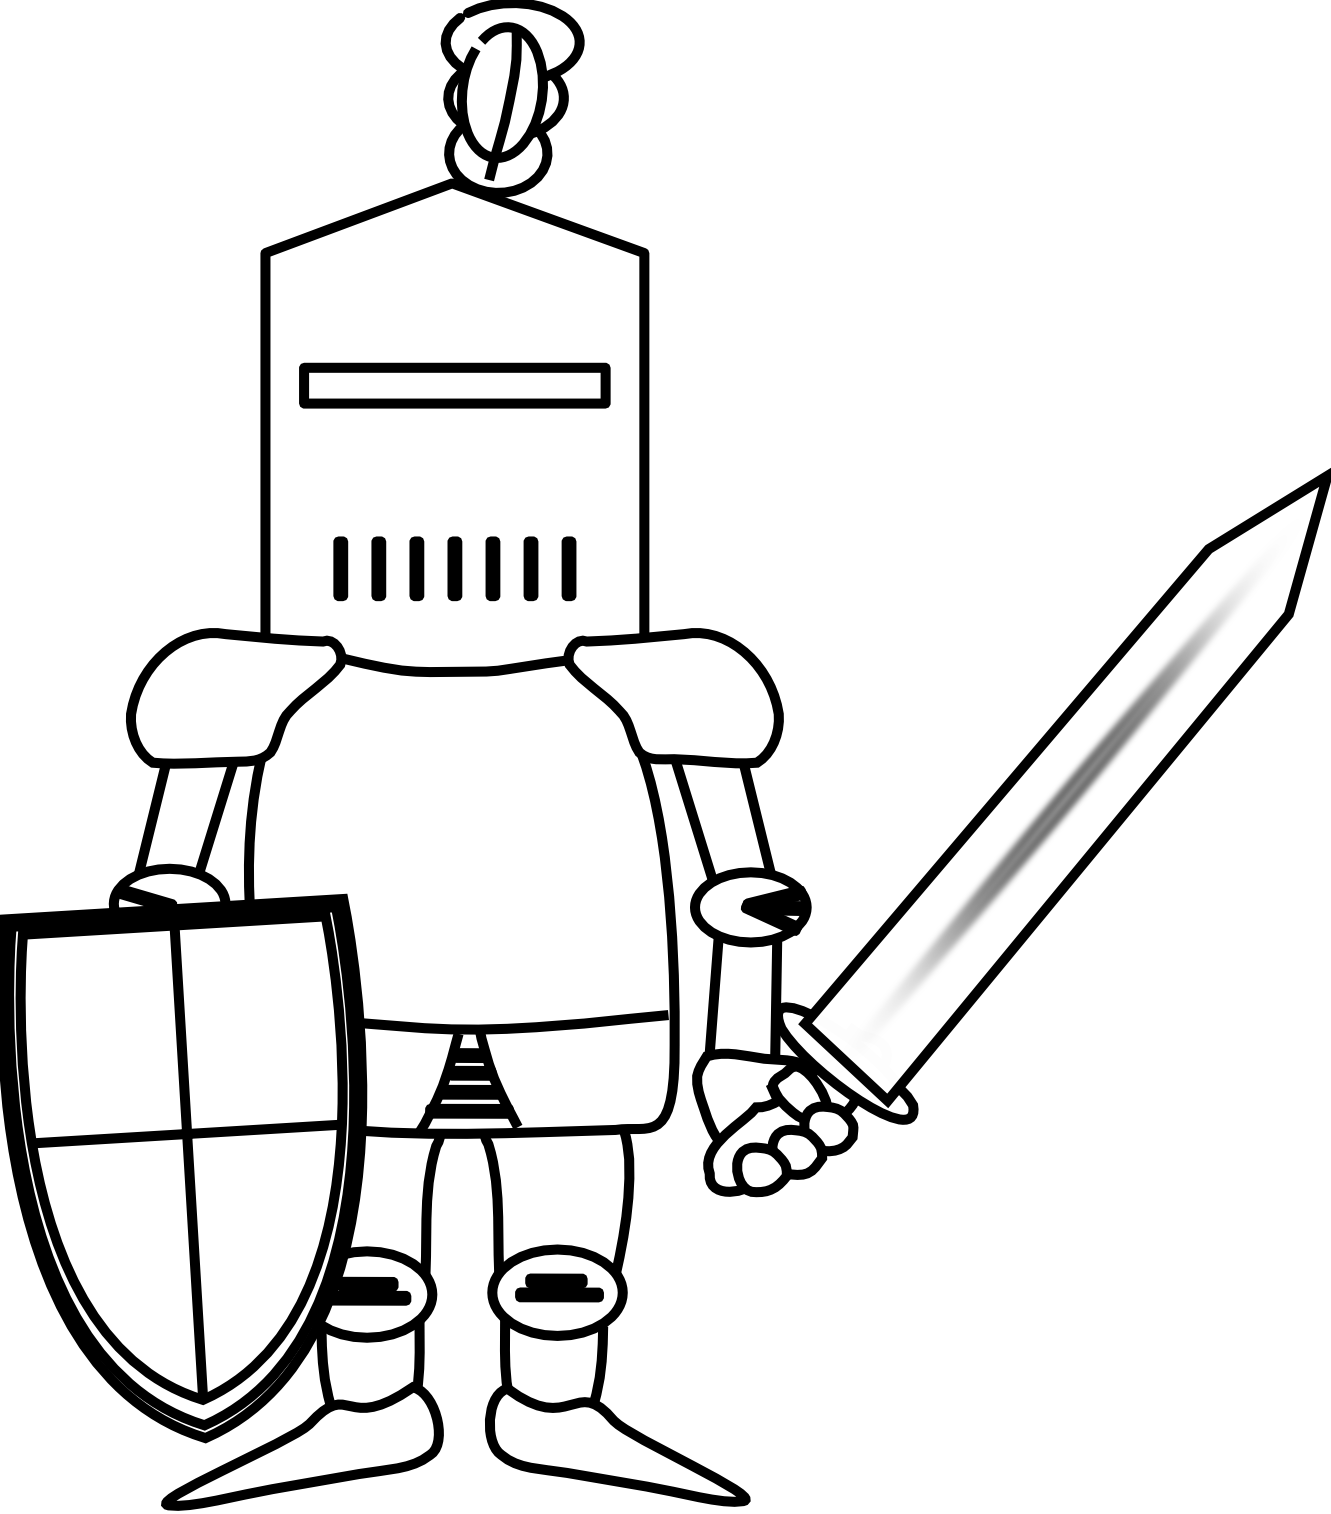 Clipart ritter kostenlos png library stock Ritter Knight October 2011 openclipart.org commons.wikimedia.org ... png library stock